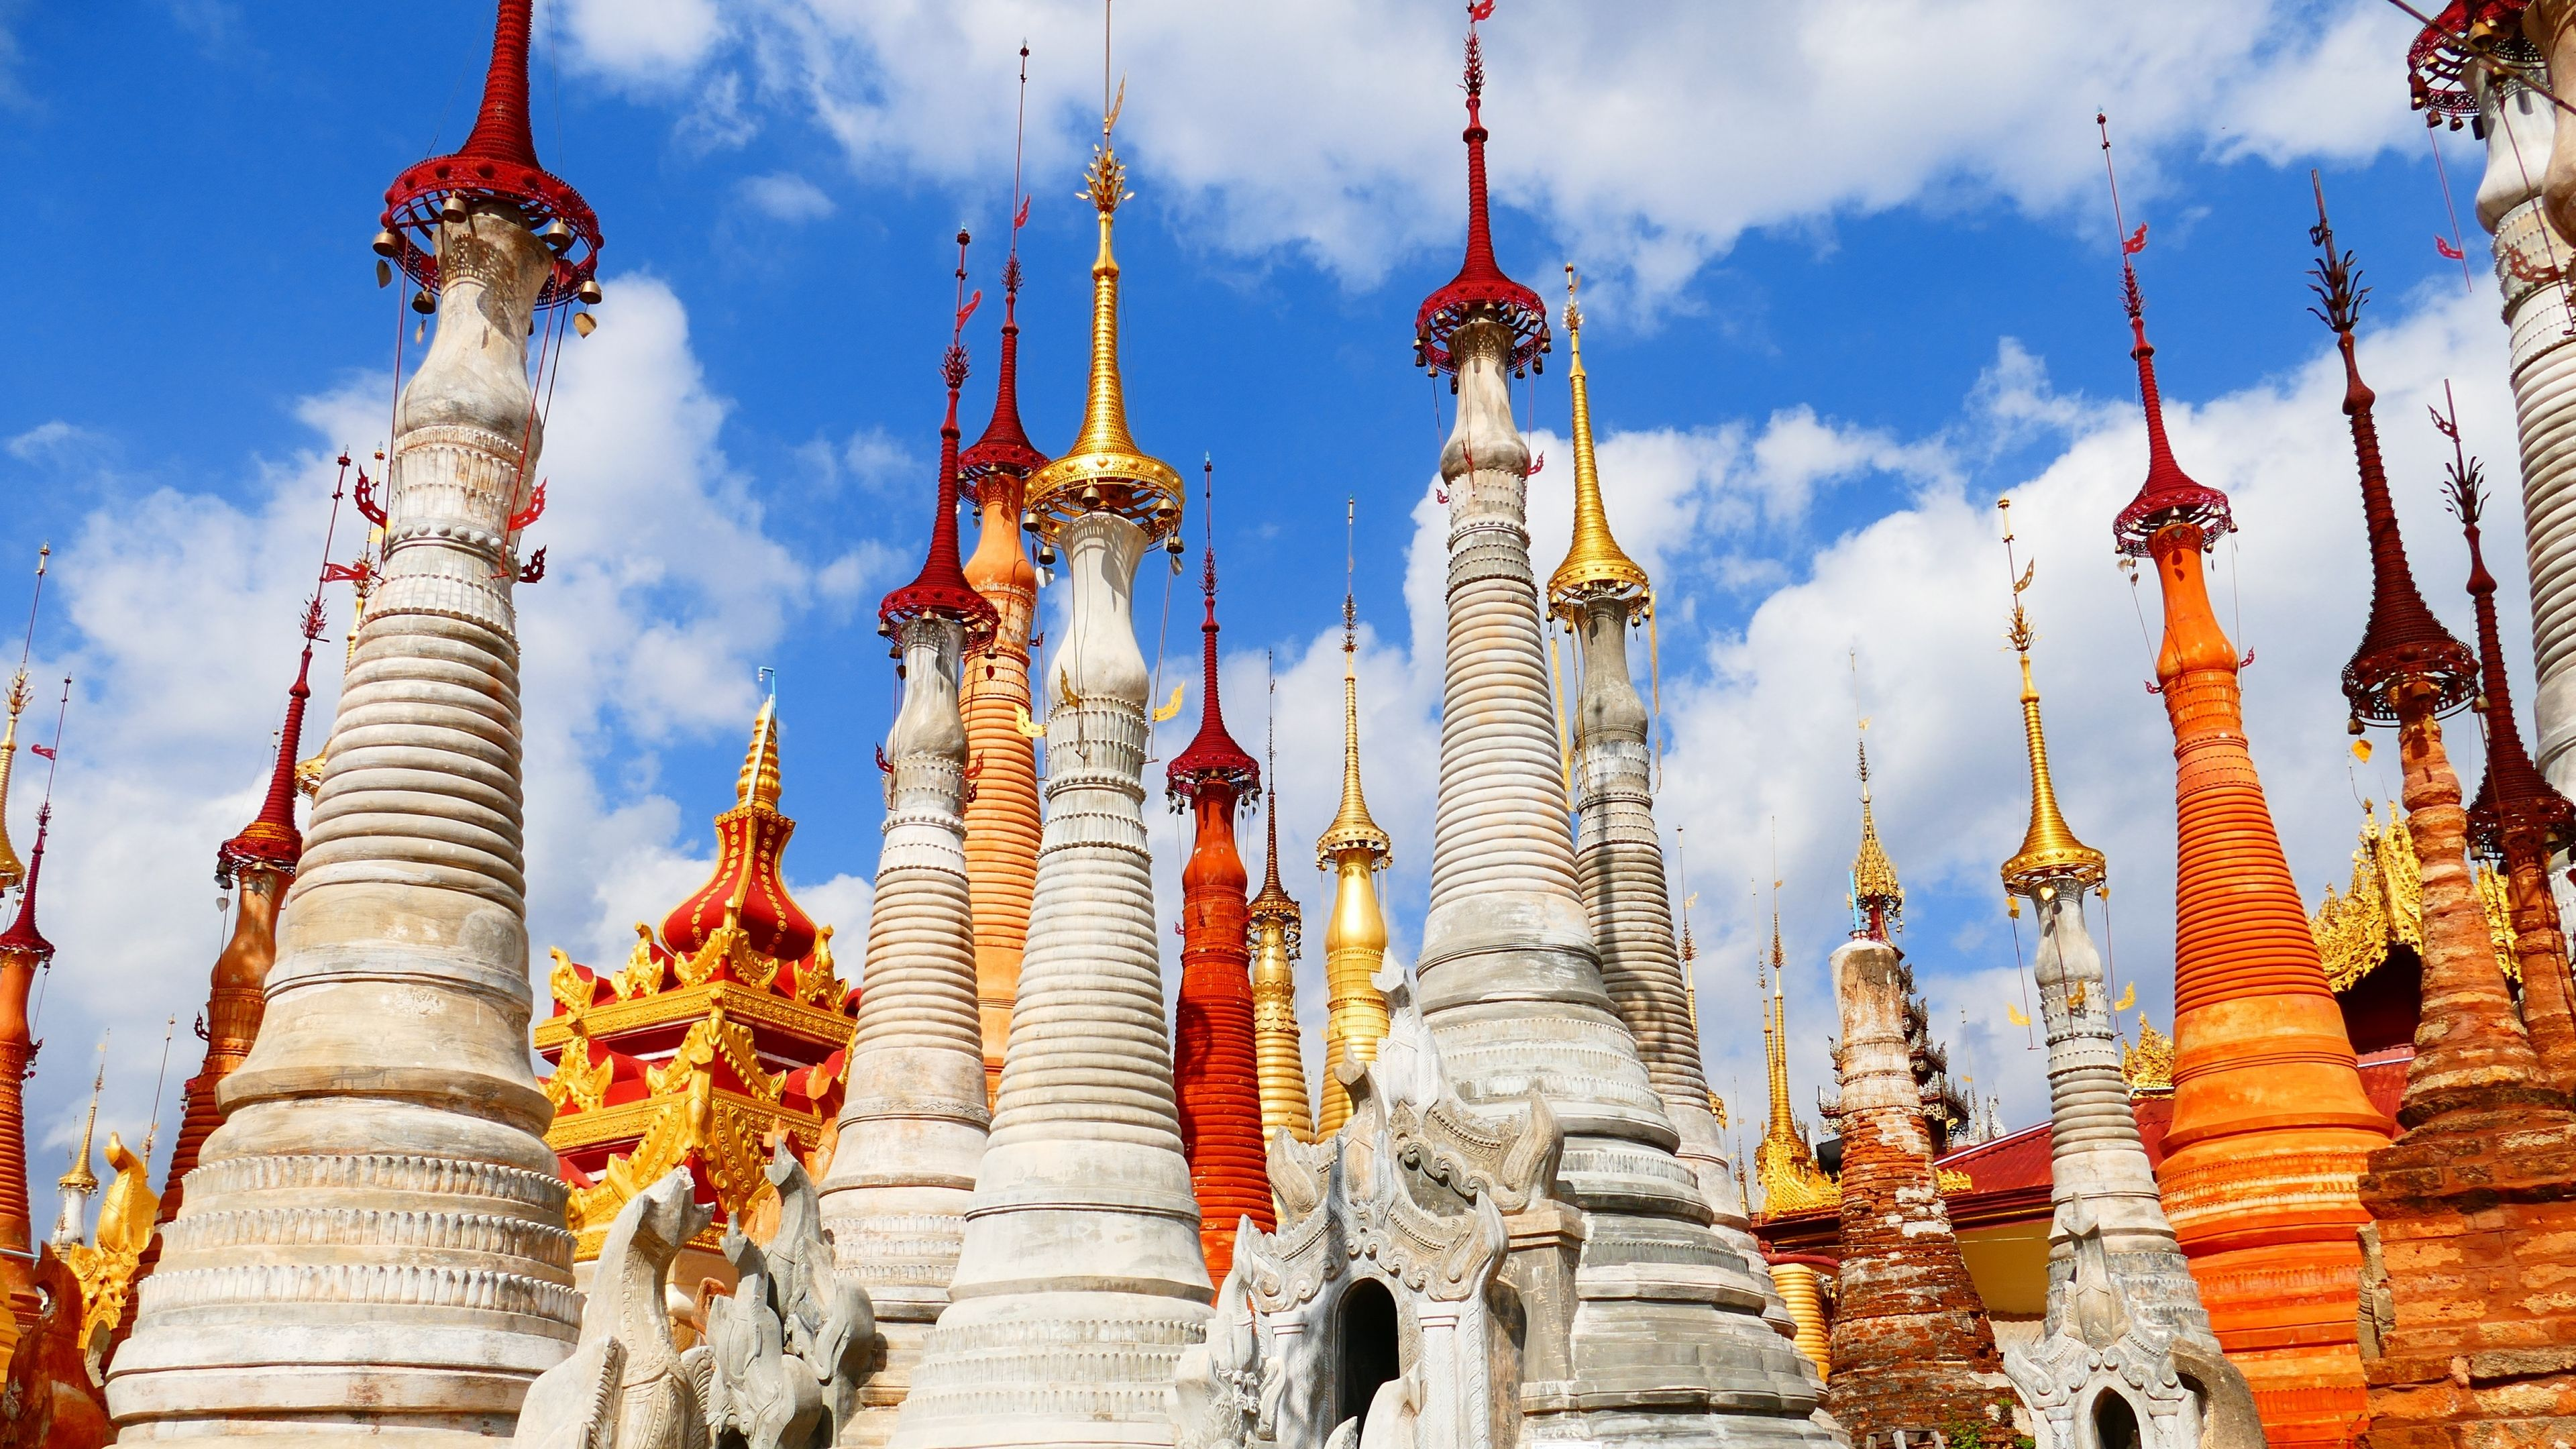 Download Wallpapers 3840x2160 Buildings, Myanmar, Burma, Pagoda